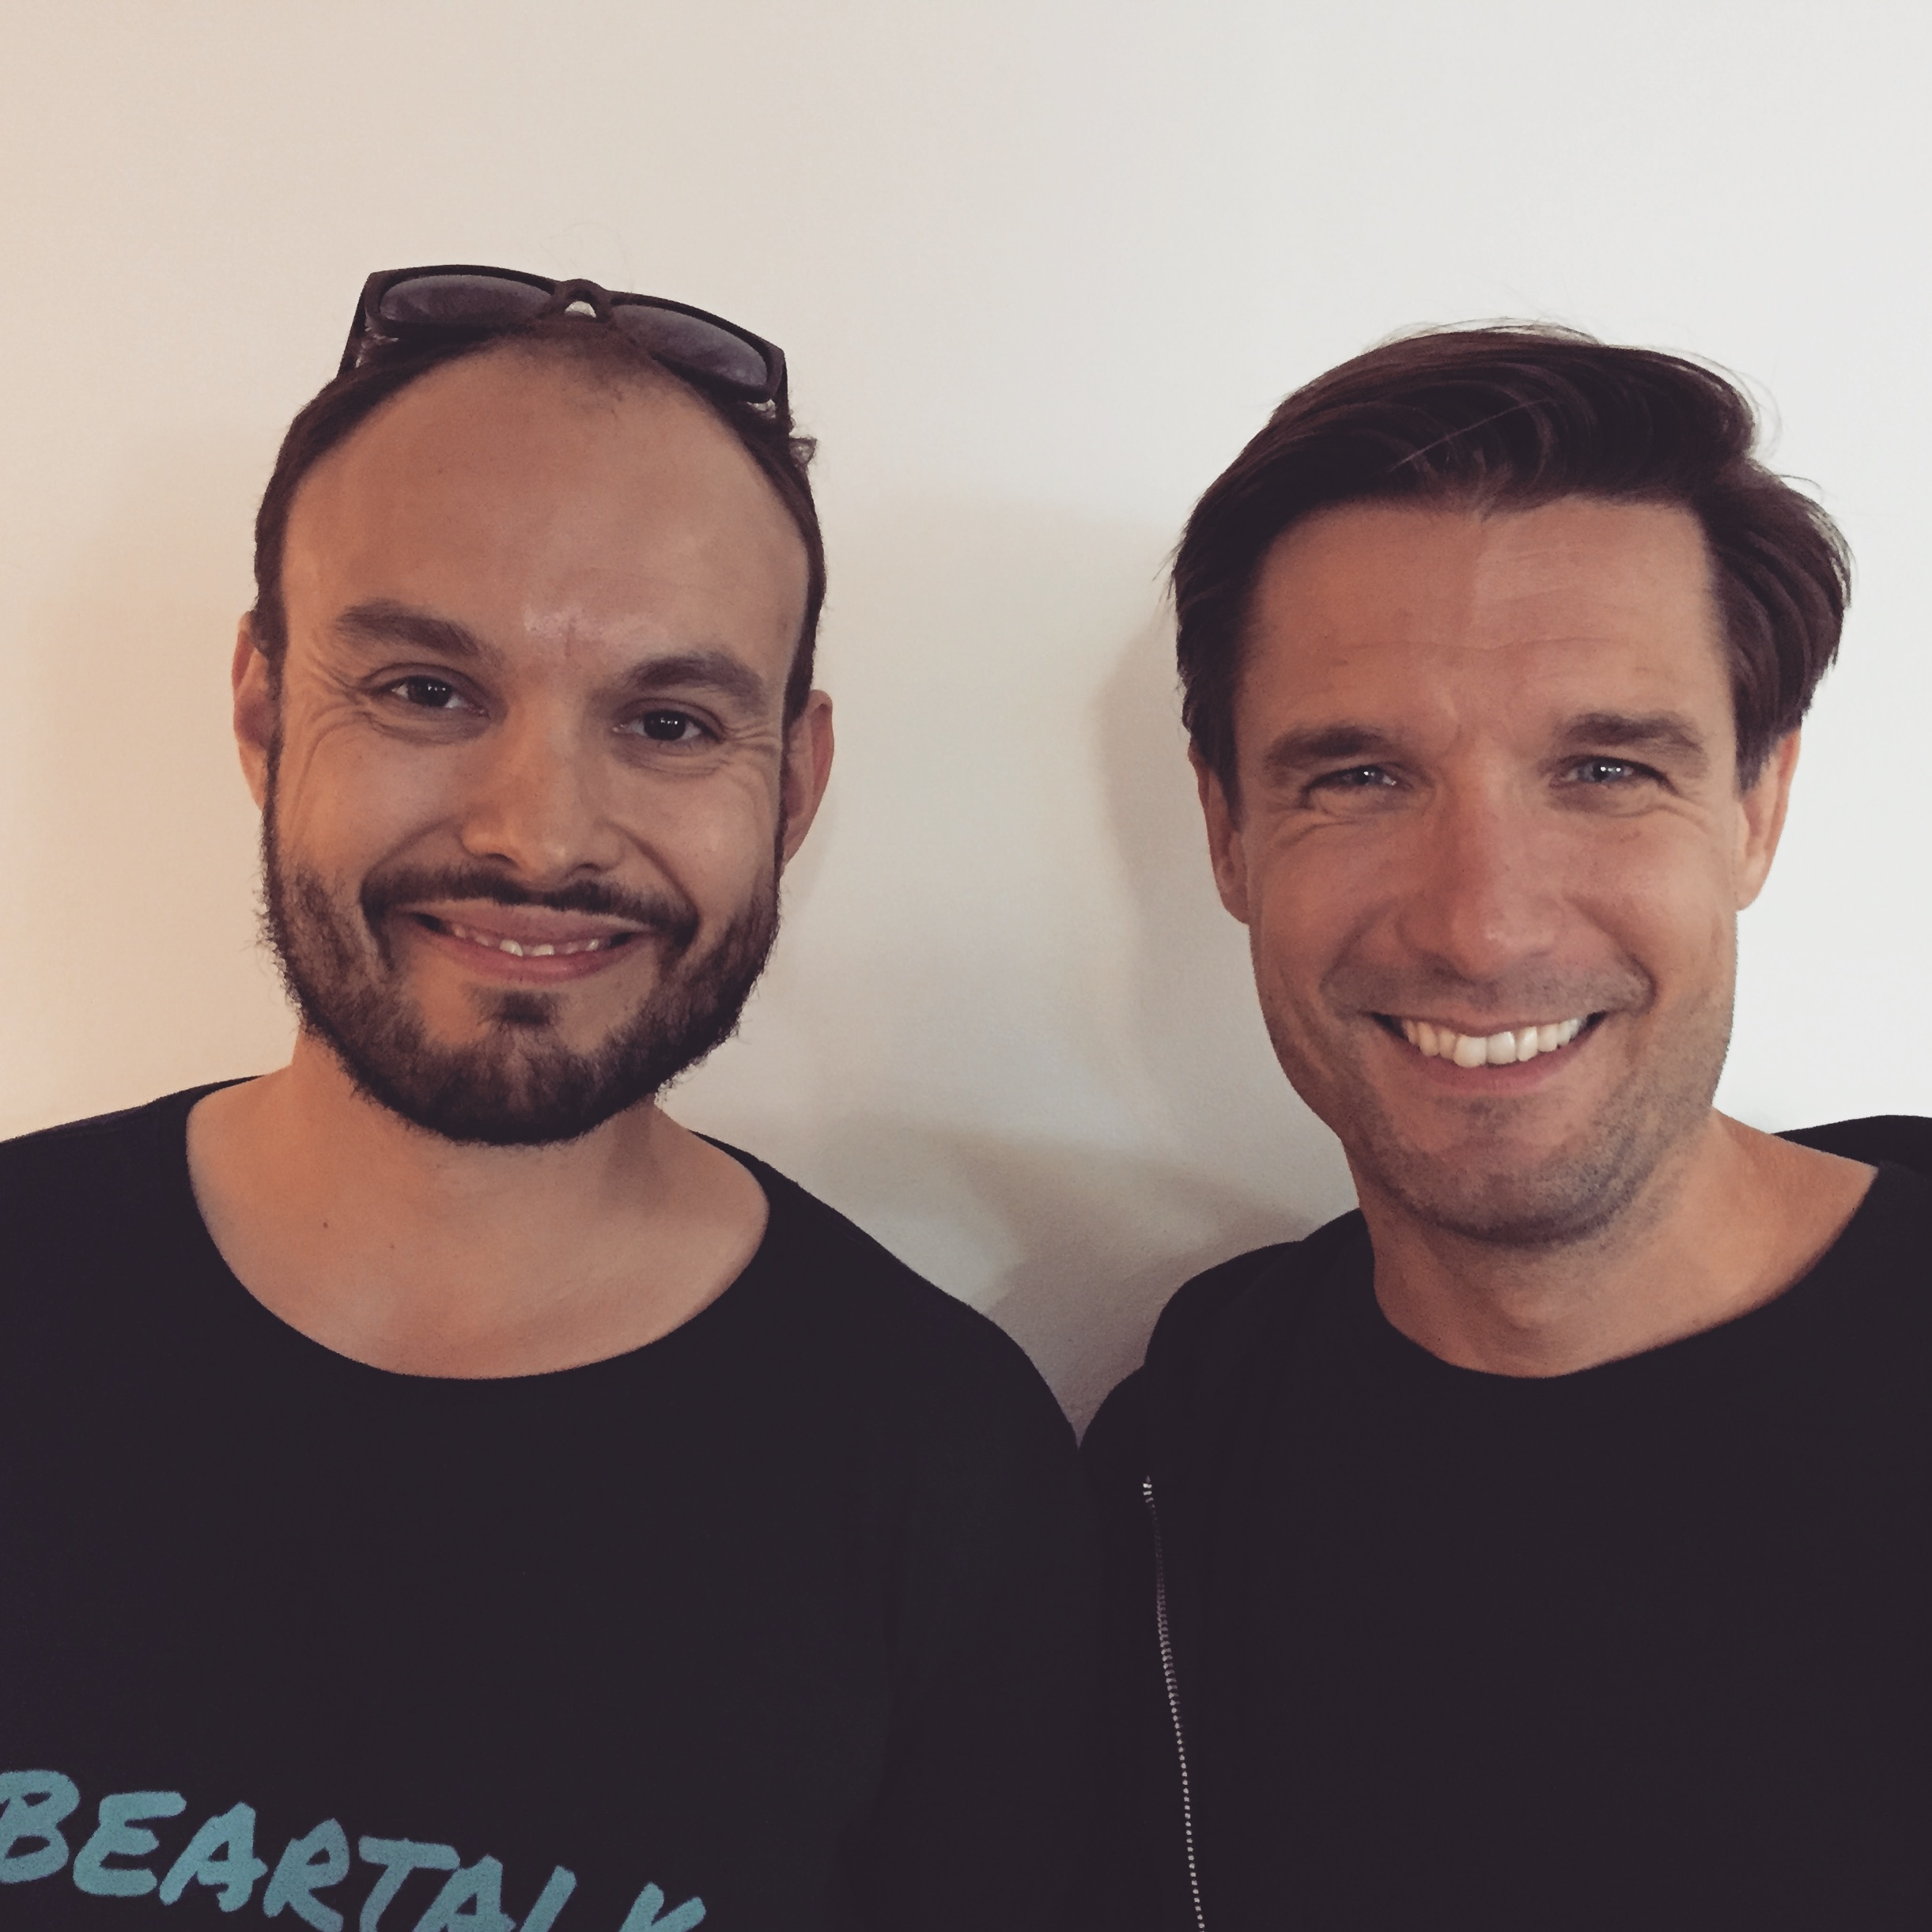 Beartalk Episode 27 - Morten Resen